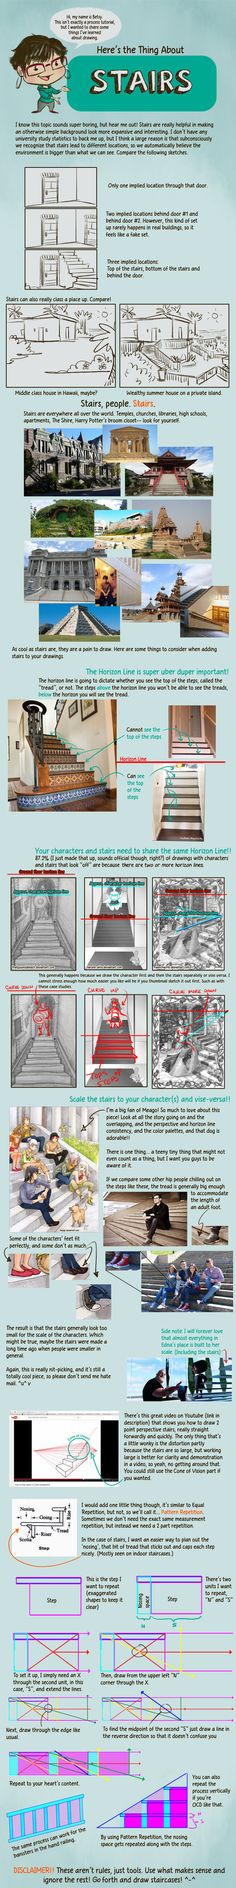 Here's the Thing About Stairs by betsyillustration on DeviantArt